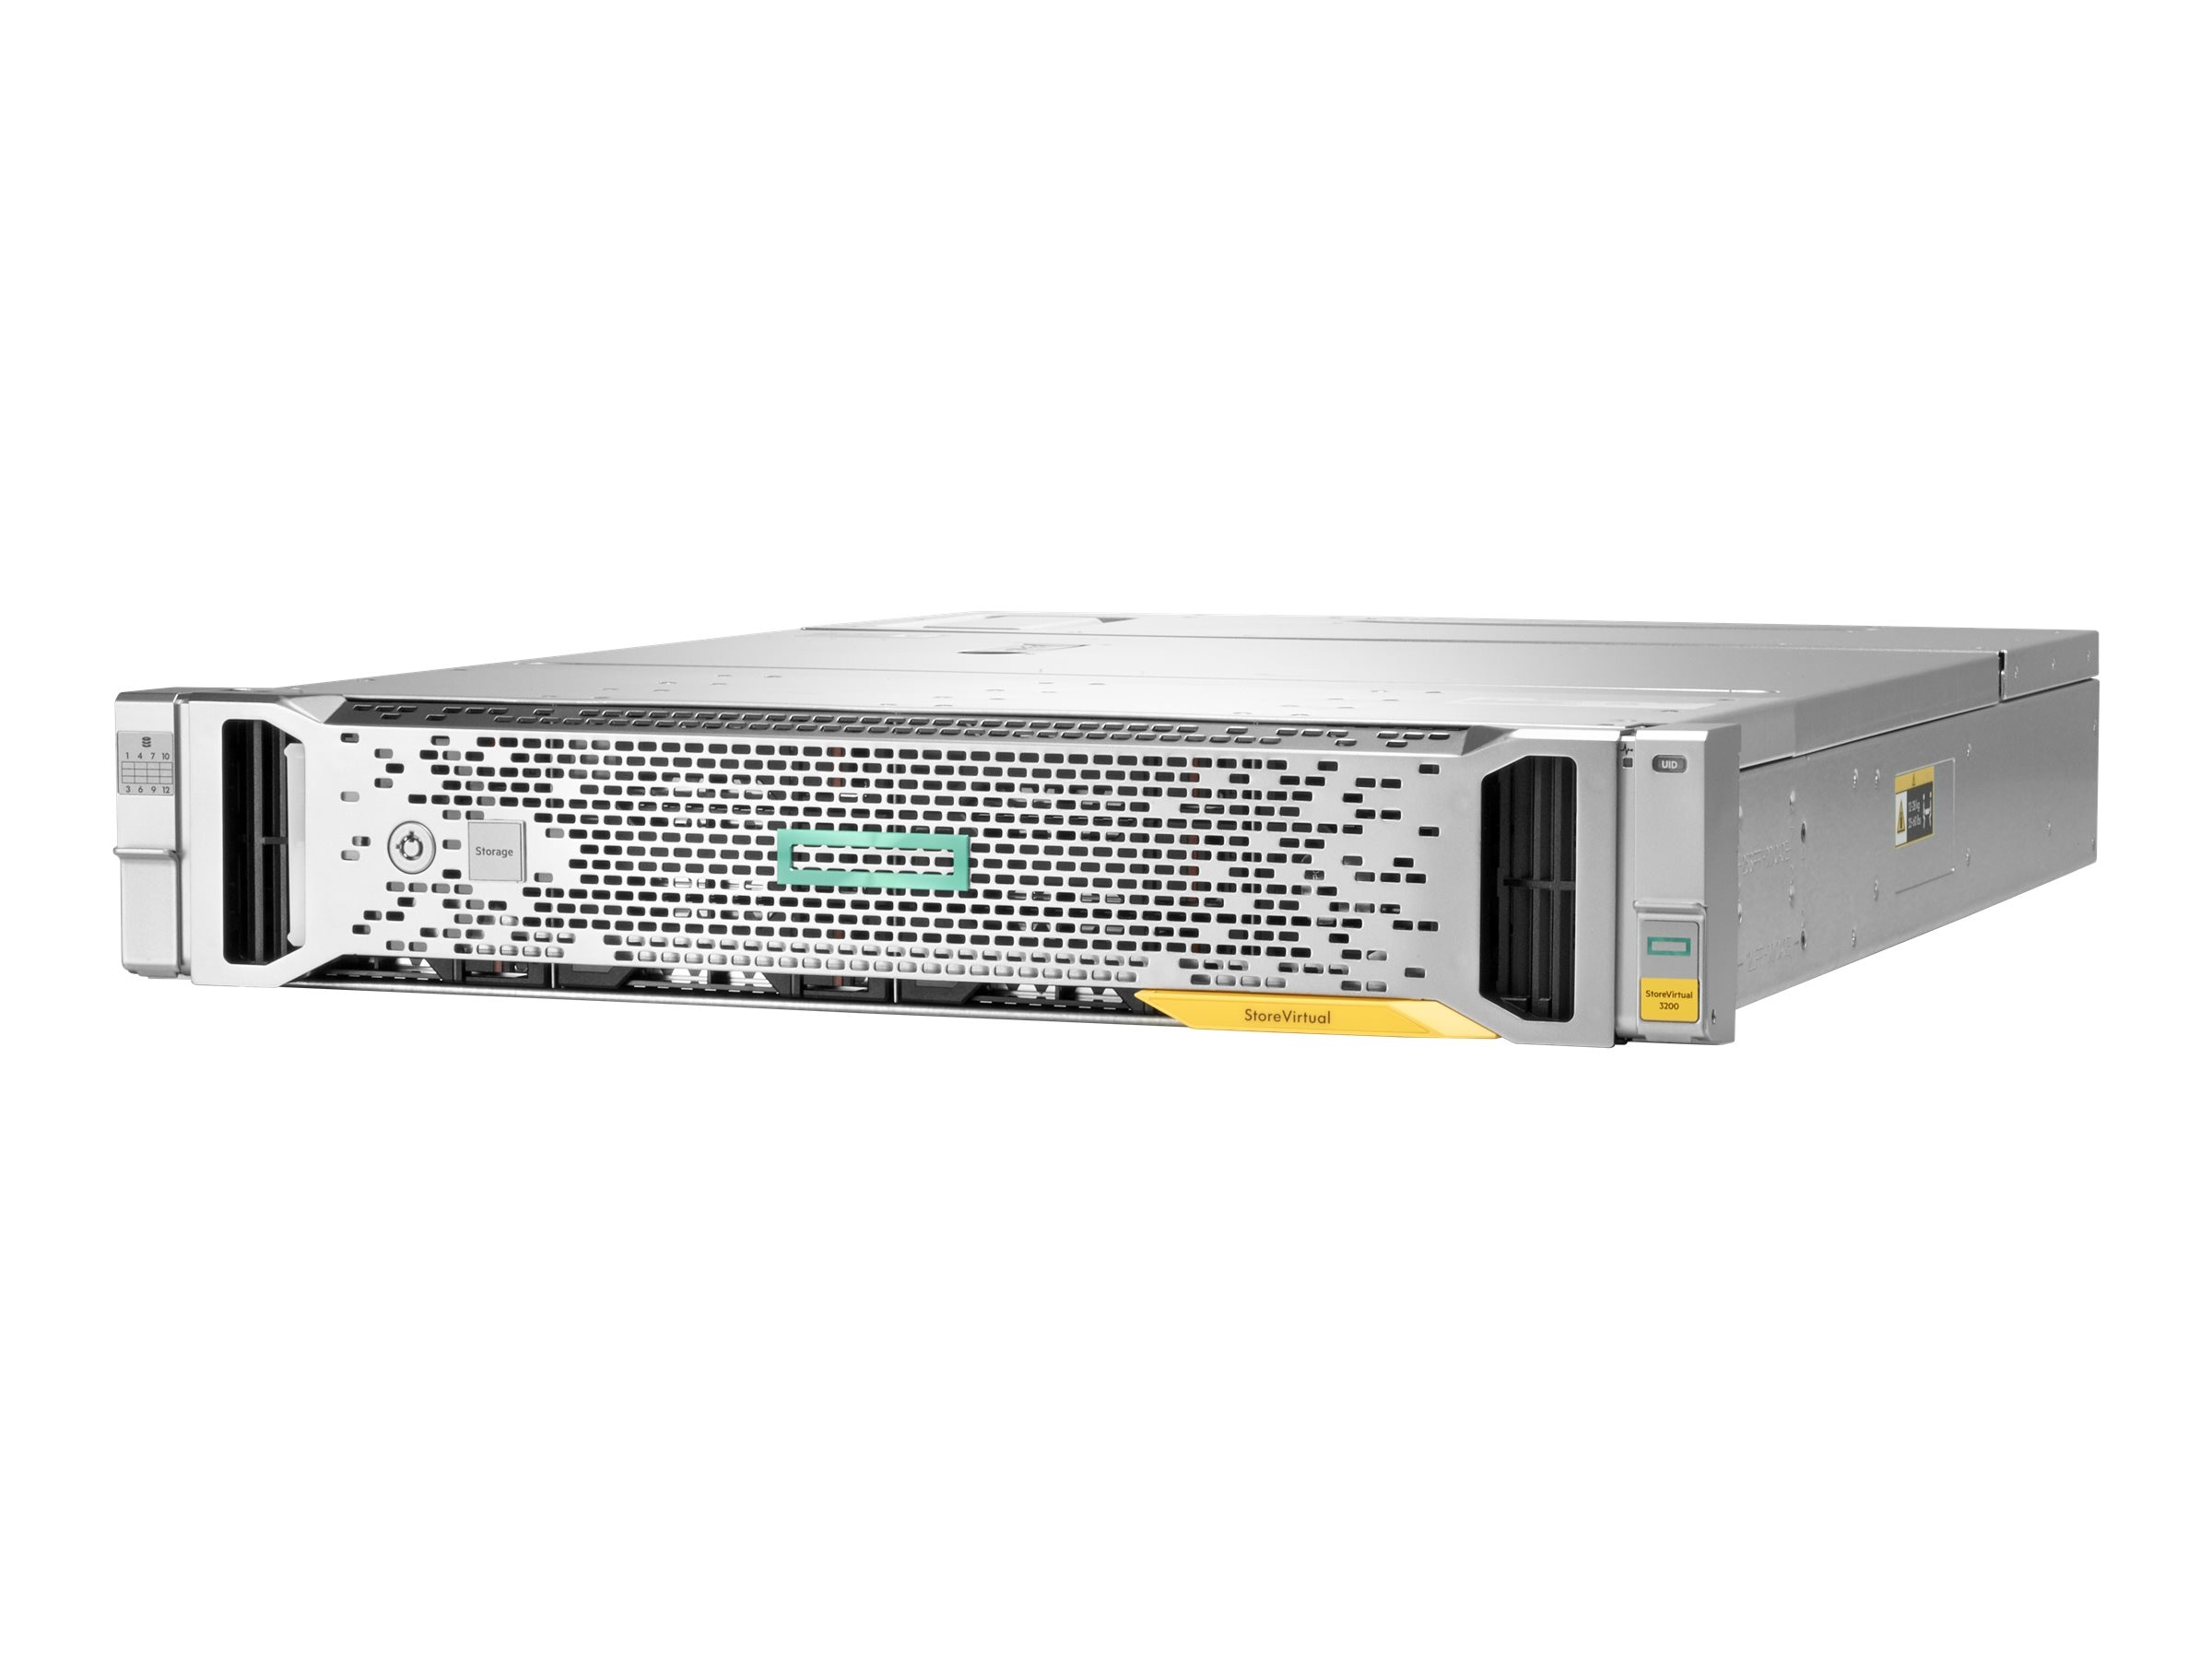 Hewlett Packard Enterprise N9X25A Image 1